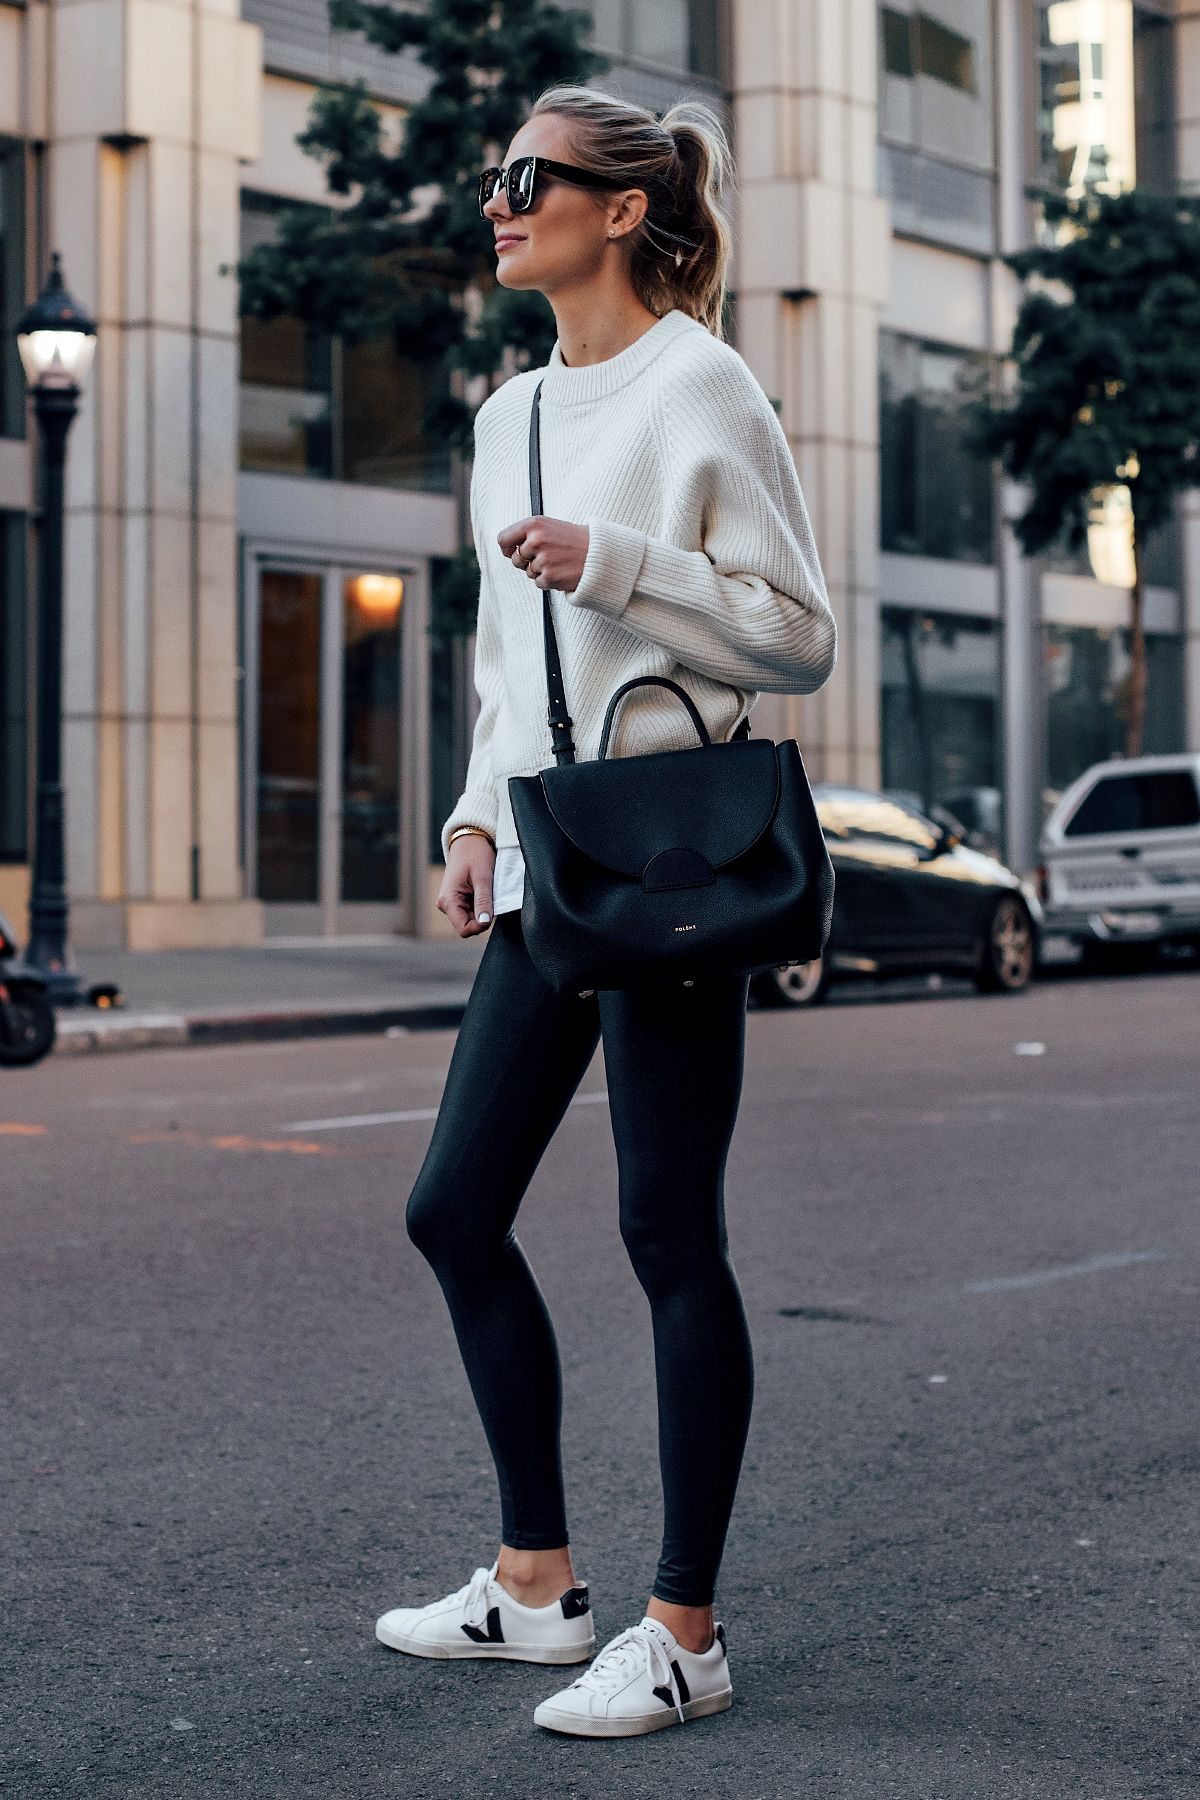 b10745a7a13f2 Blonde Woman Wearing Allsaints White Sweater White Tshirt Spanx Black Faux  Leather Leggings Veja Espalar White Sneakers Polene Black Handbag Fashion  Jackson ...